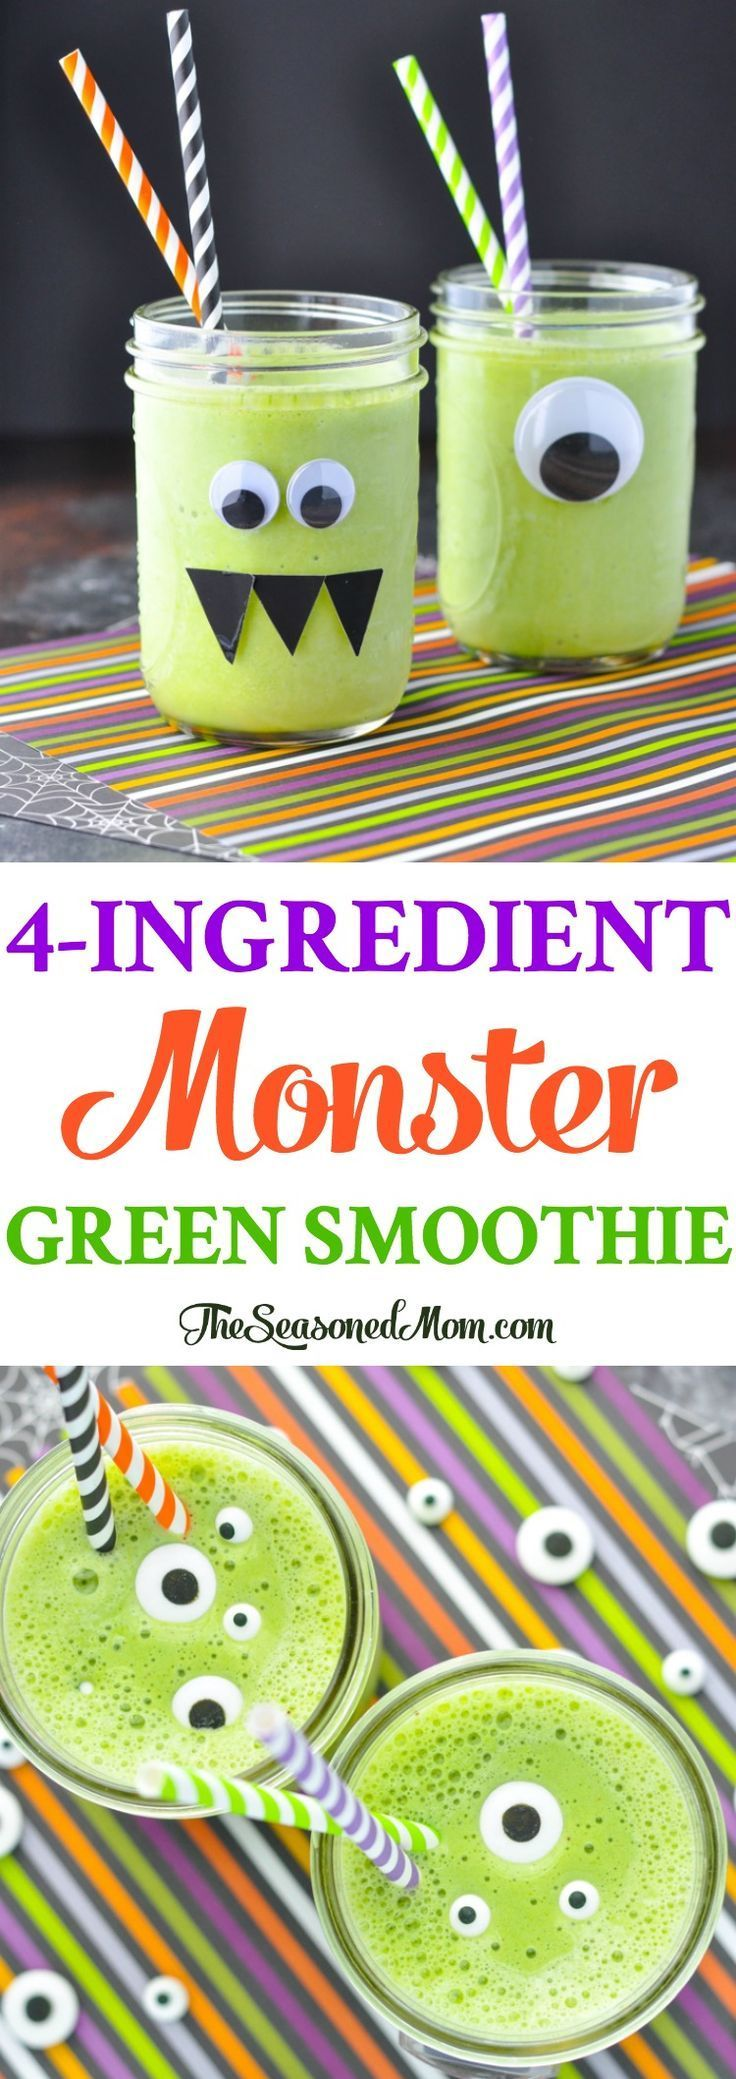 4-Ingredient Monster Green Smoothie 4-Ingredient Monster Green Smoothie Kelly | Nosh and Nourish noshandnourish Juices Smoothies and Other Drinks A 4-Ingredient Monster Green Smoothie […]  #4Ingredient #detox breakfast ideas mornings #Green #monster #Smoothie #halloweenbreakfastforkids